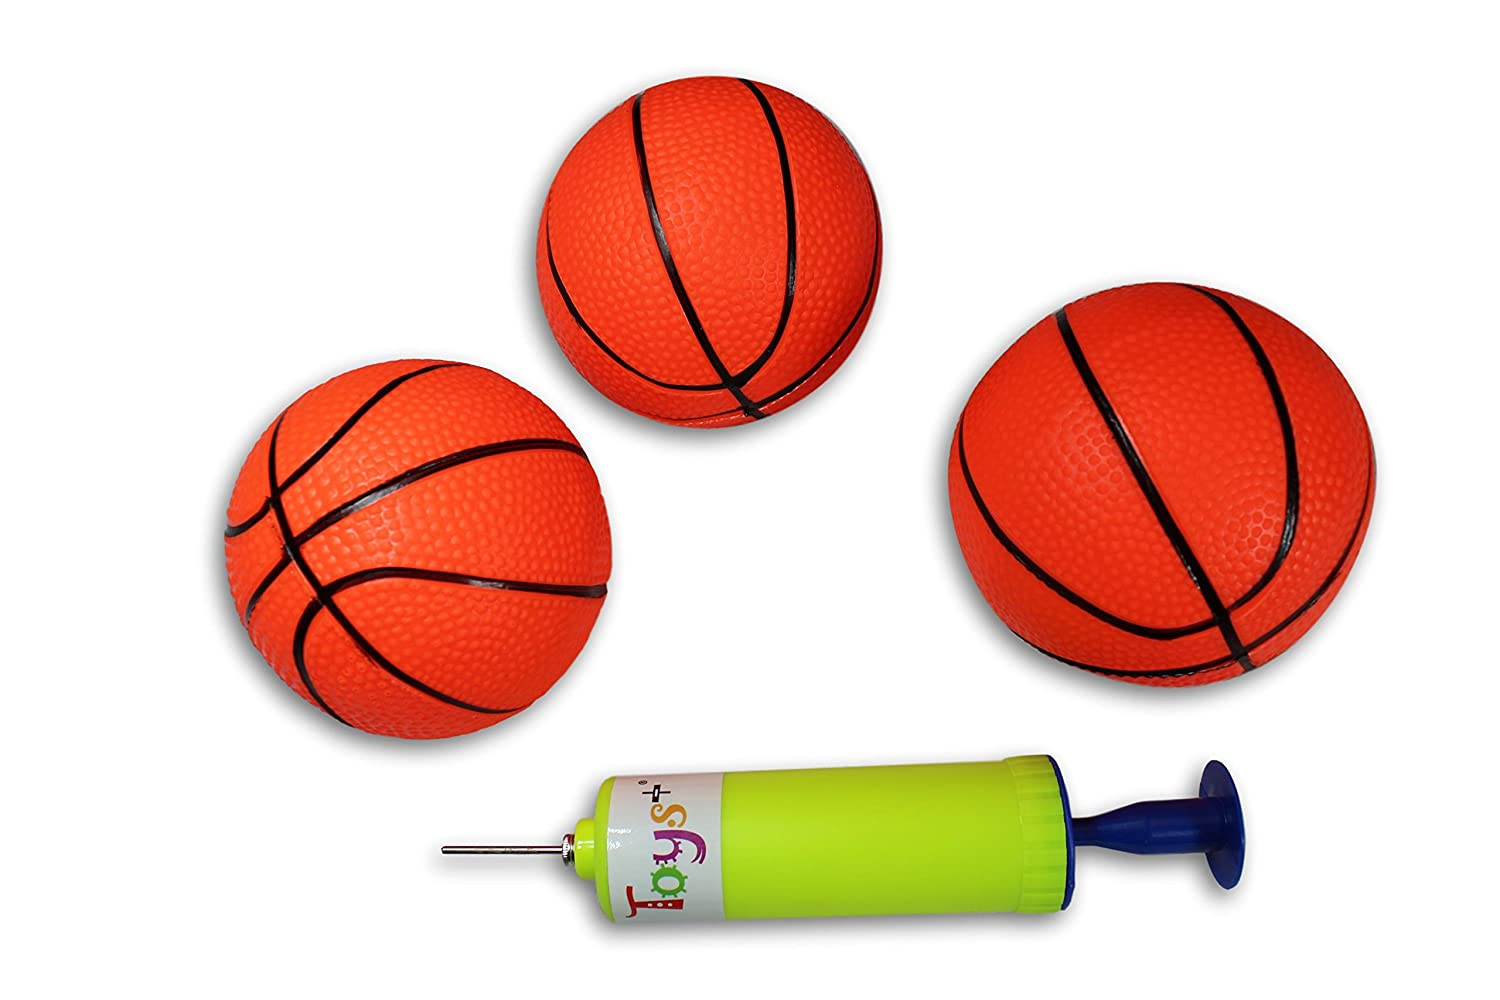 Amazon.com: 3 Pack. hinchable Mini Baloncesto Incluye Bomba ...